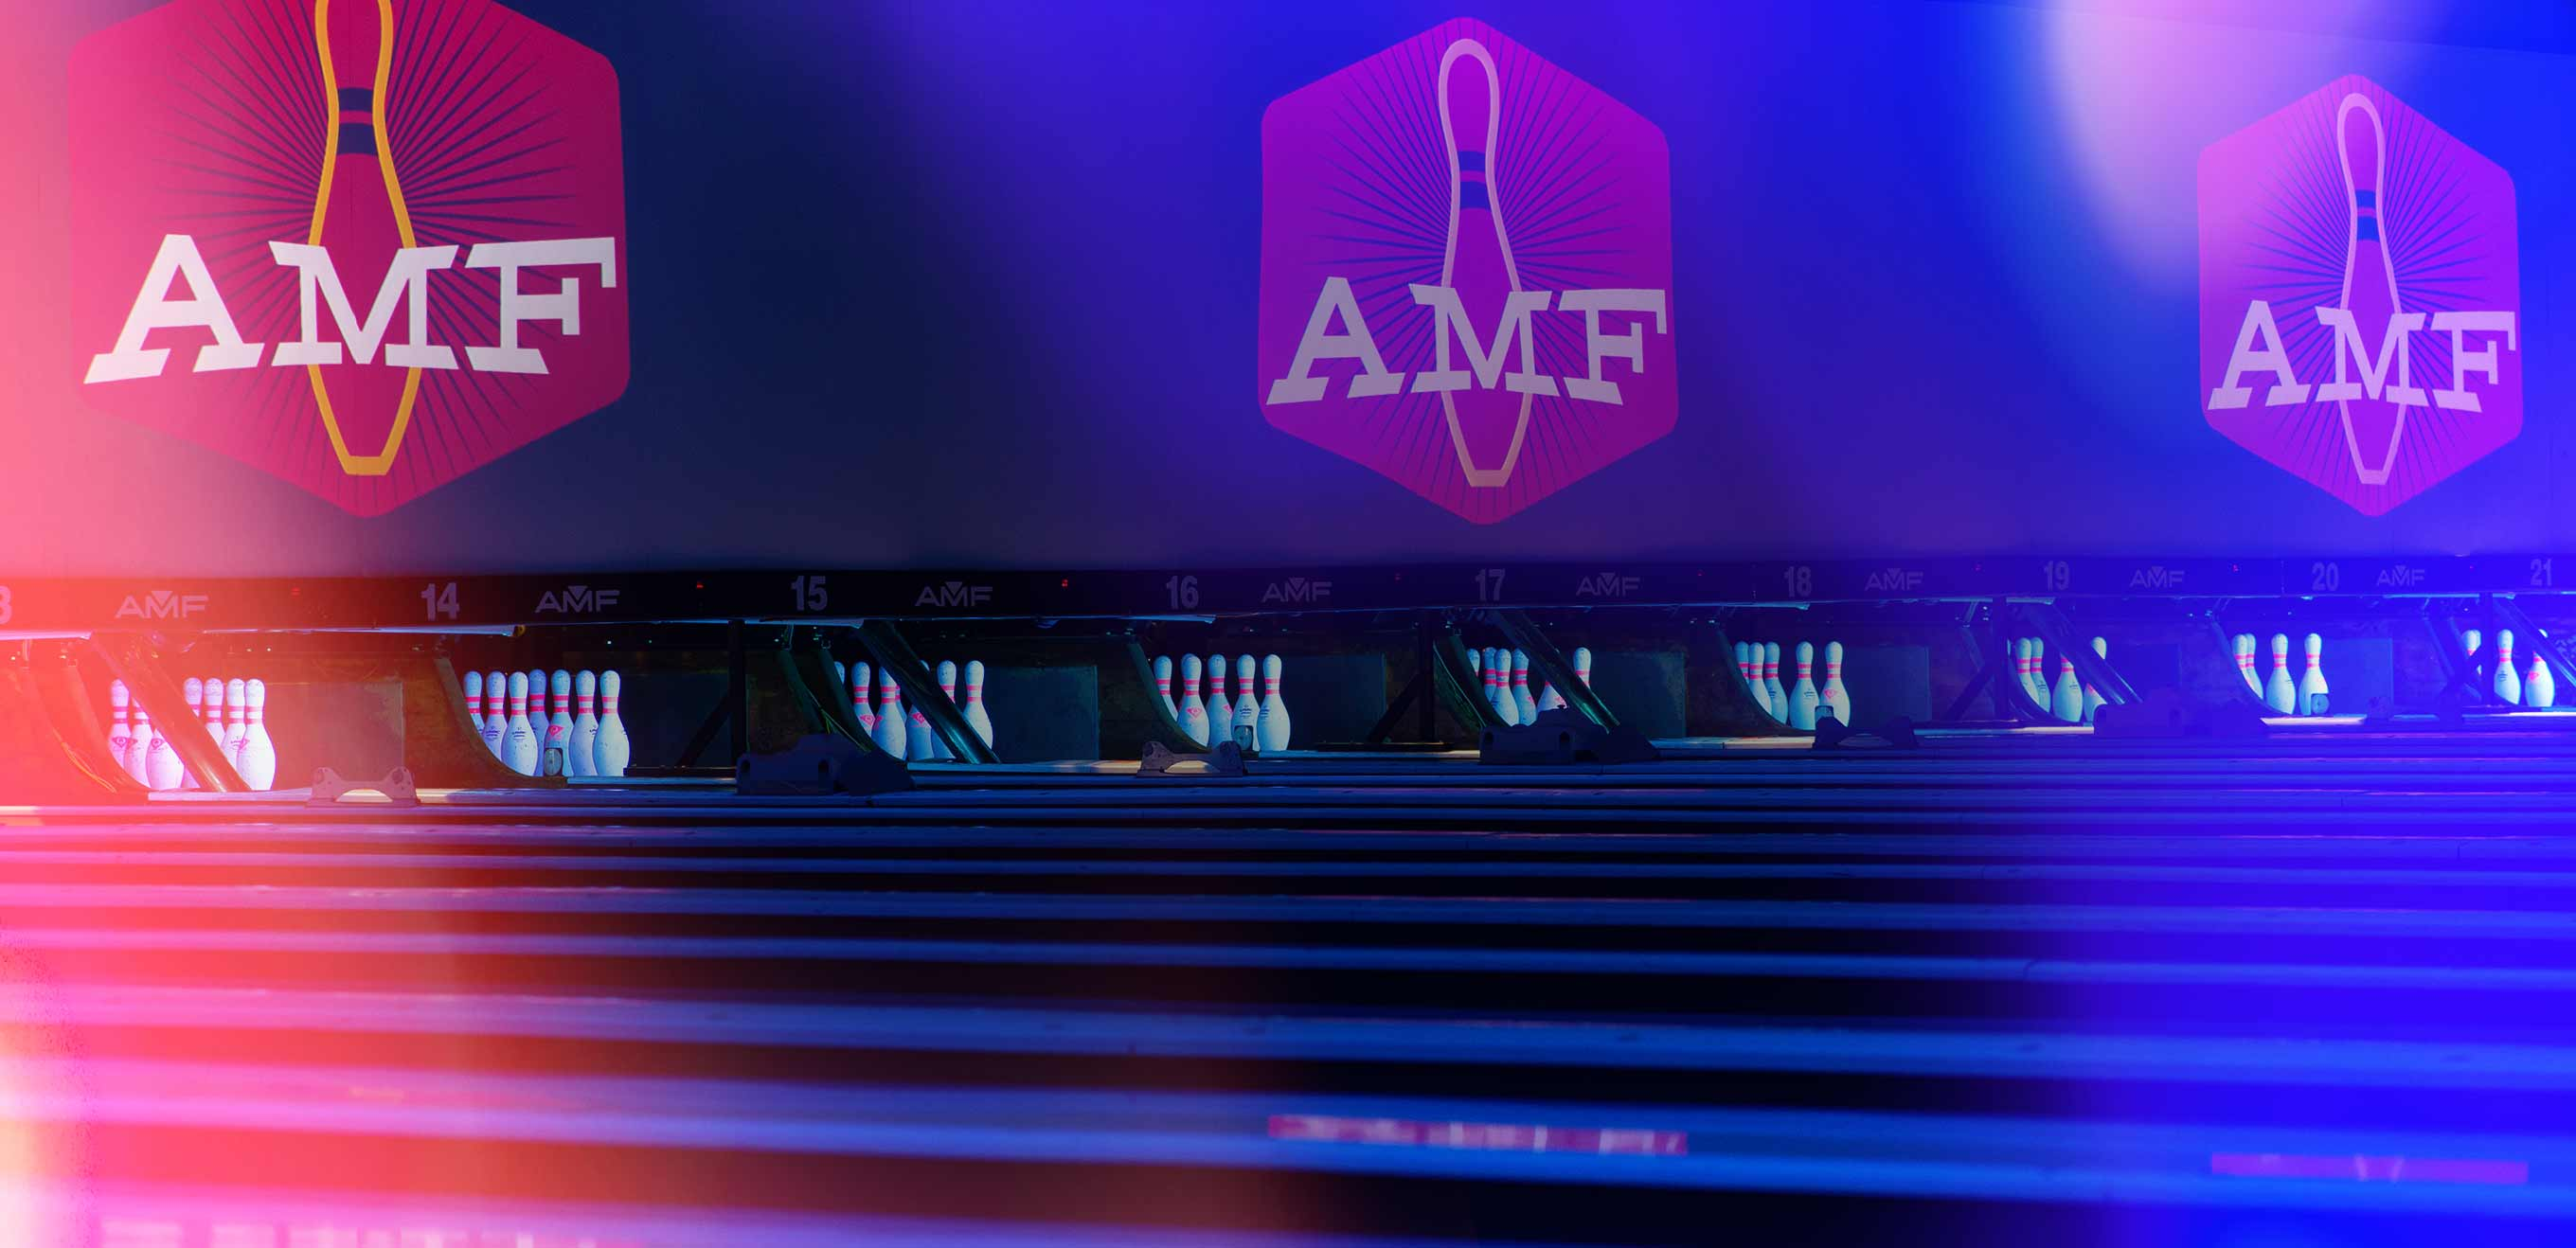 amf logo on image of bowling lanes